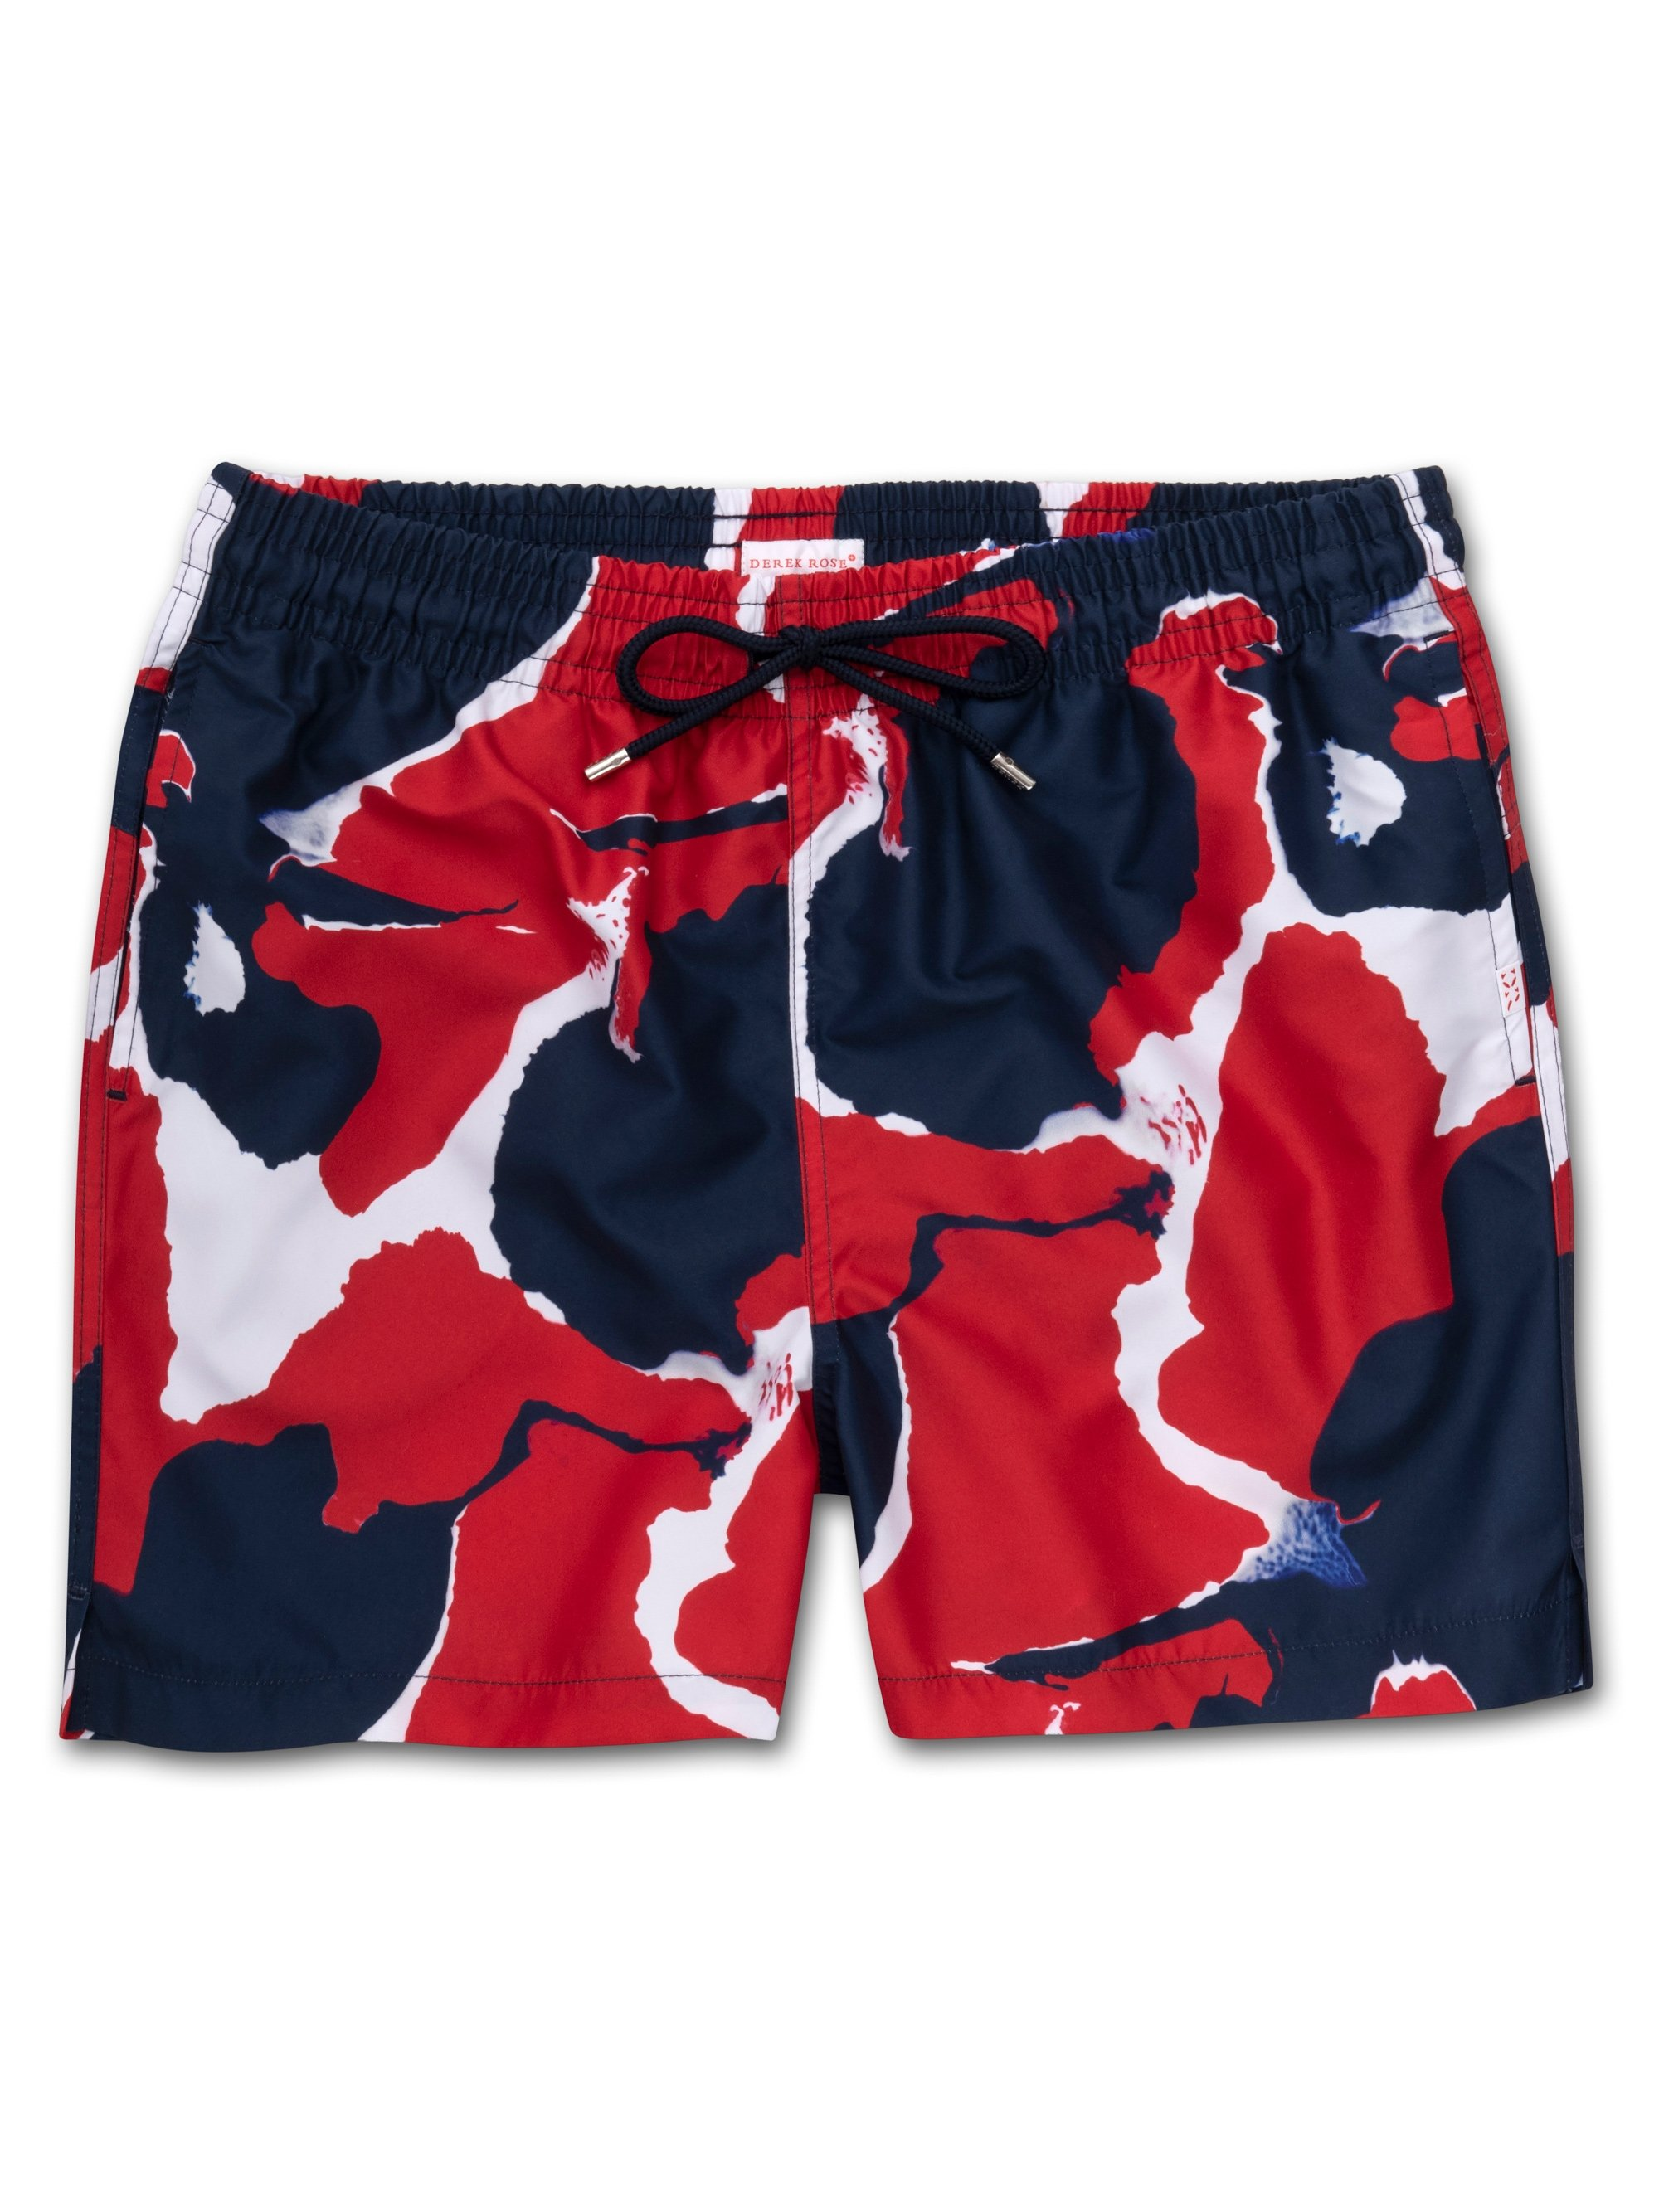 Men's Short Classic Fit Swim Shorts Maui 29 Red